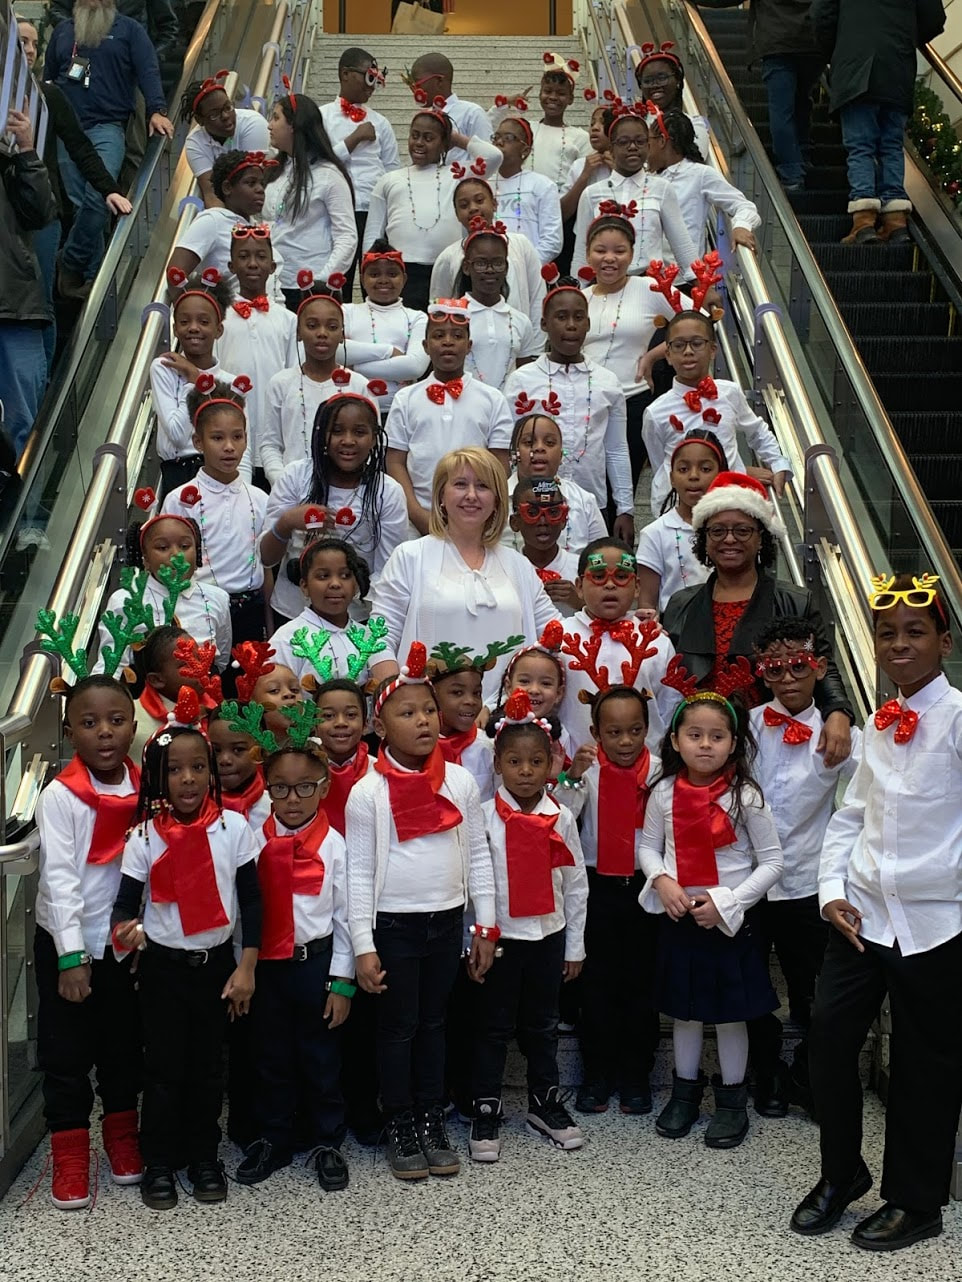 Ms. Grechko and Ms. Garcia with chorus at Kings Plaza